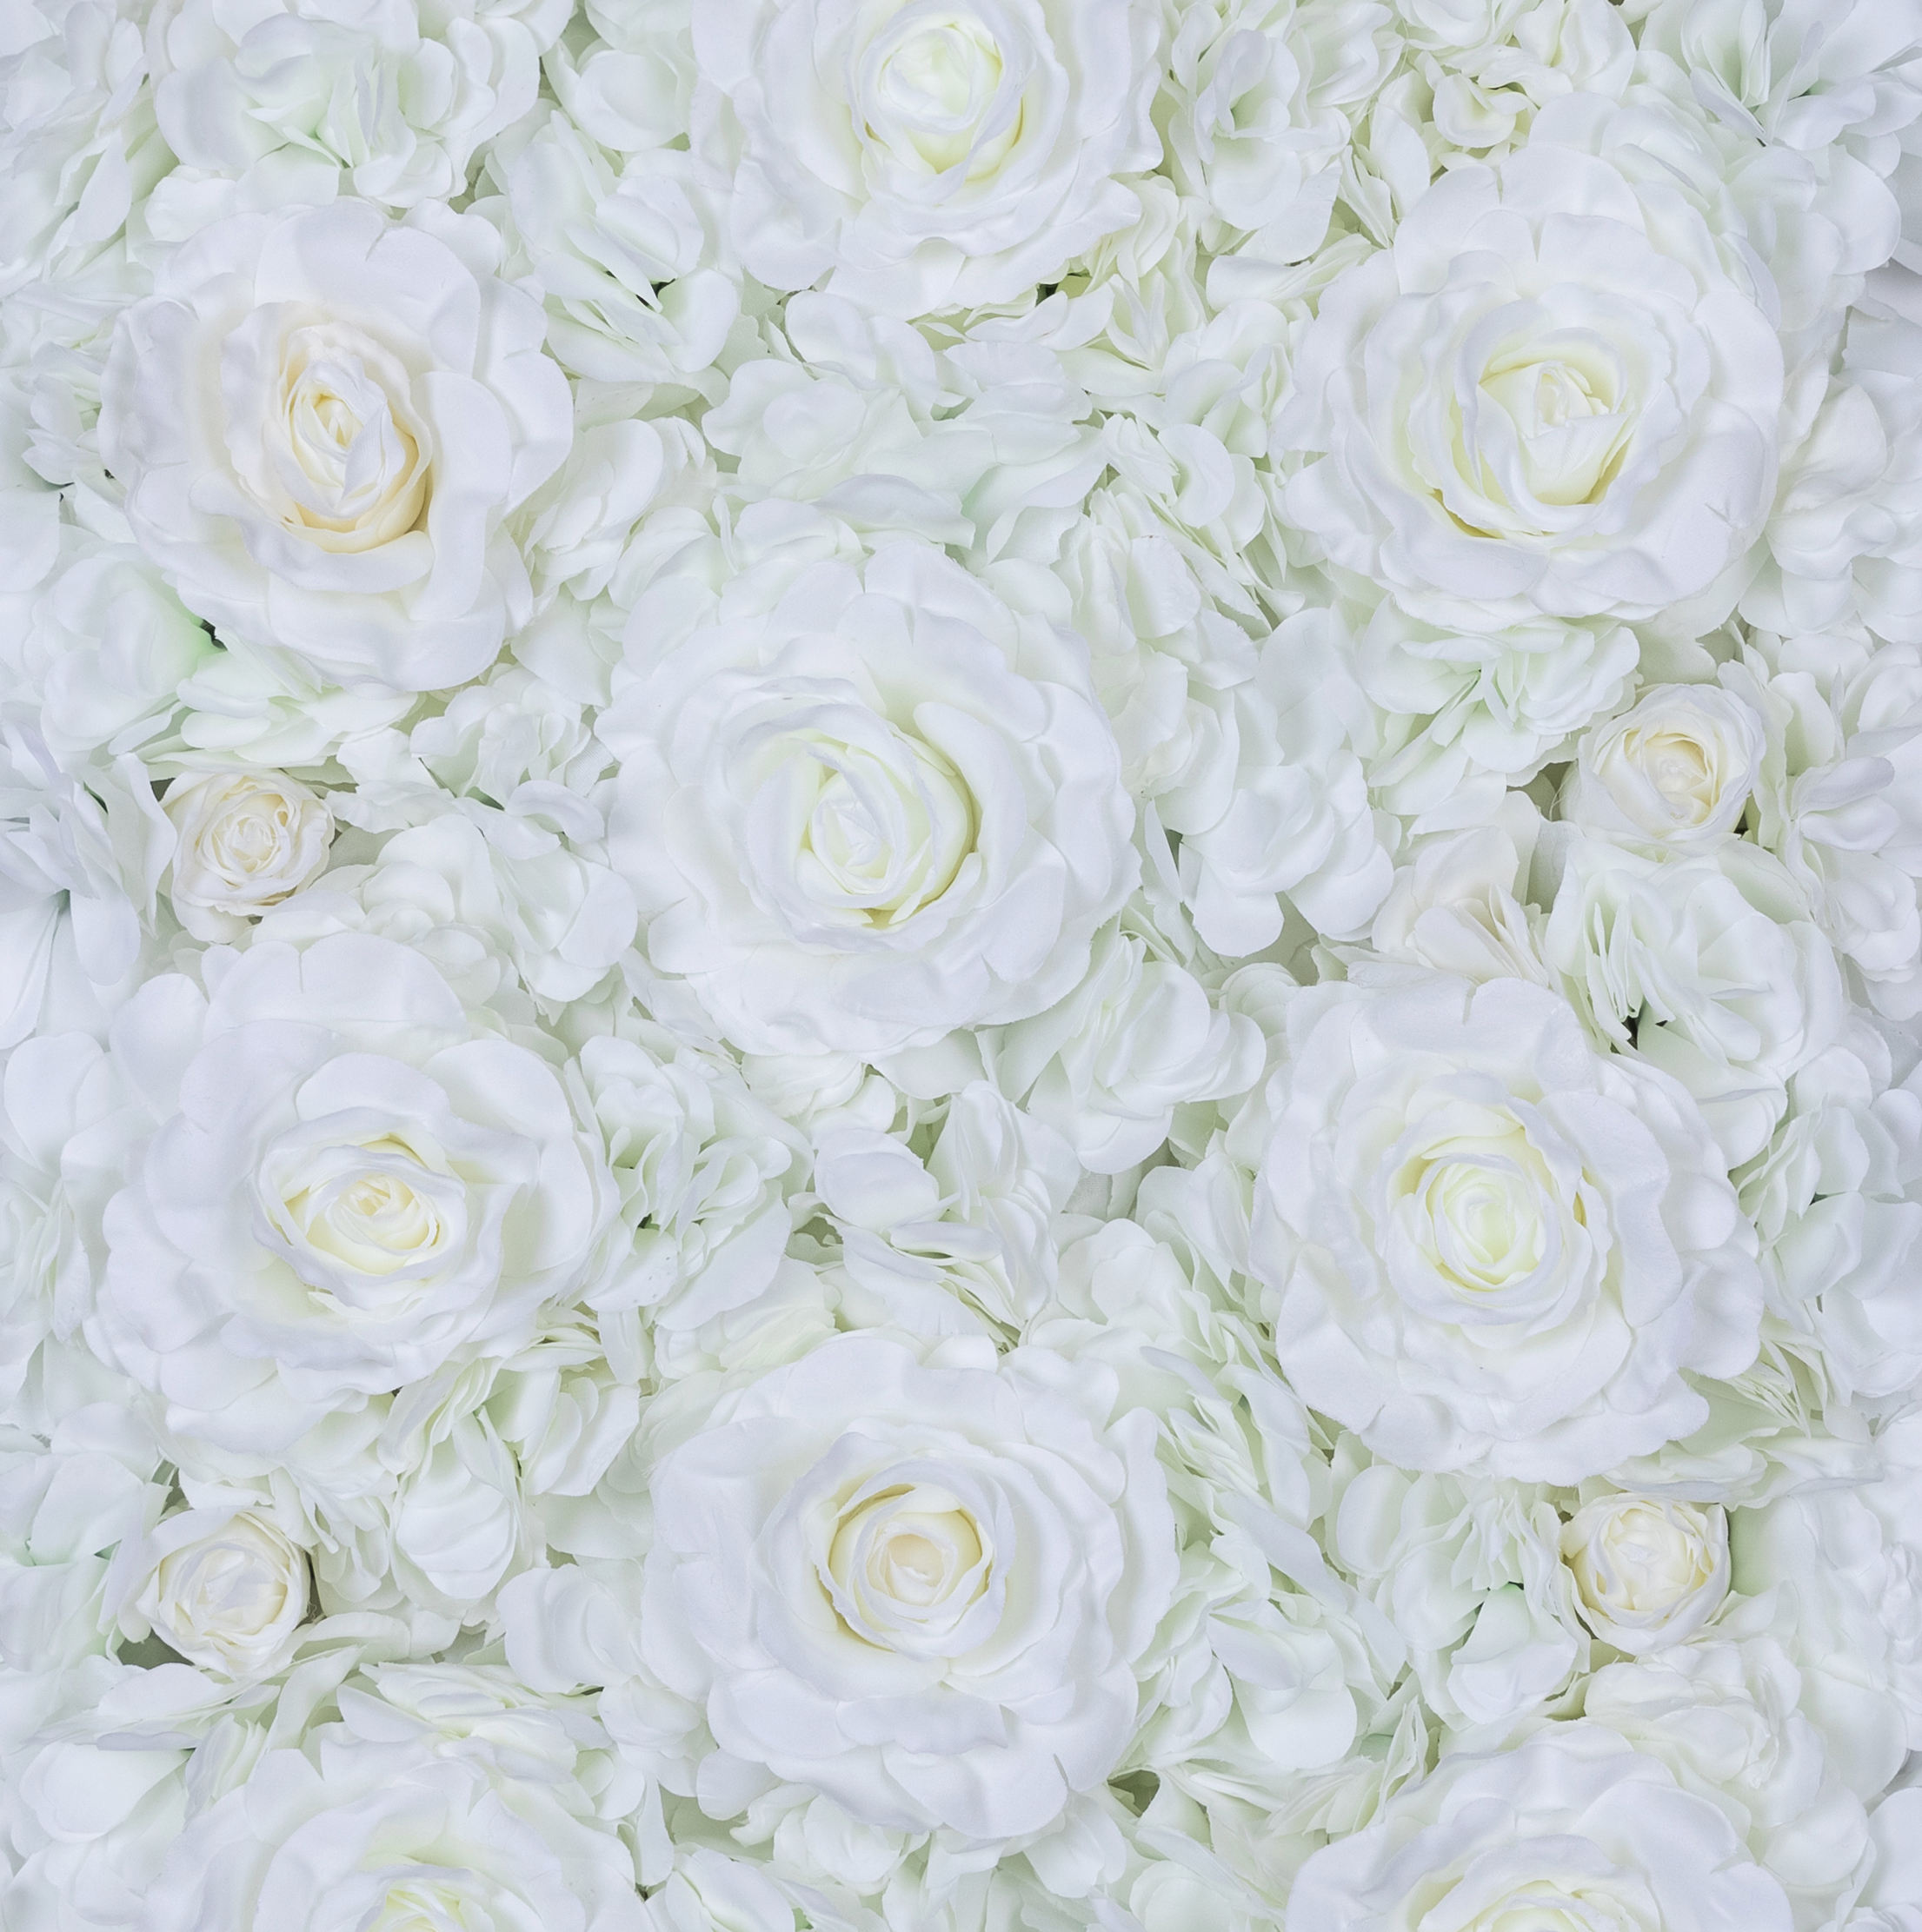 High Quality White Artificial Flower Wall Silk Rose Wall Panels For Wedding backdrop